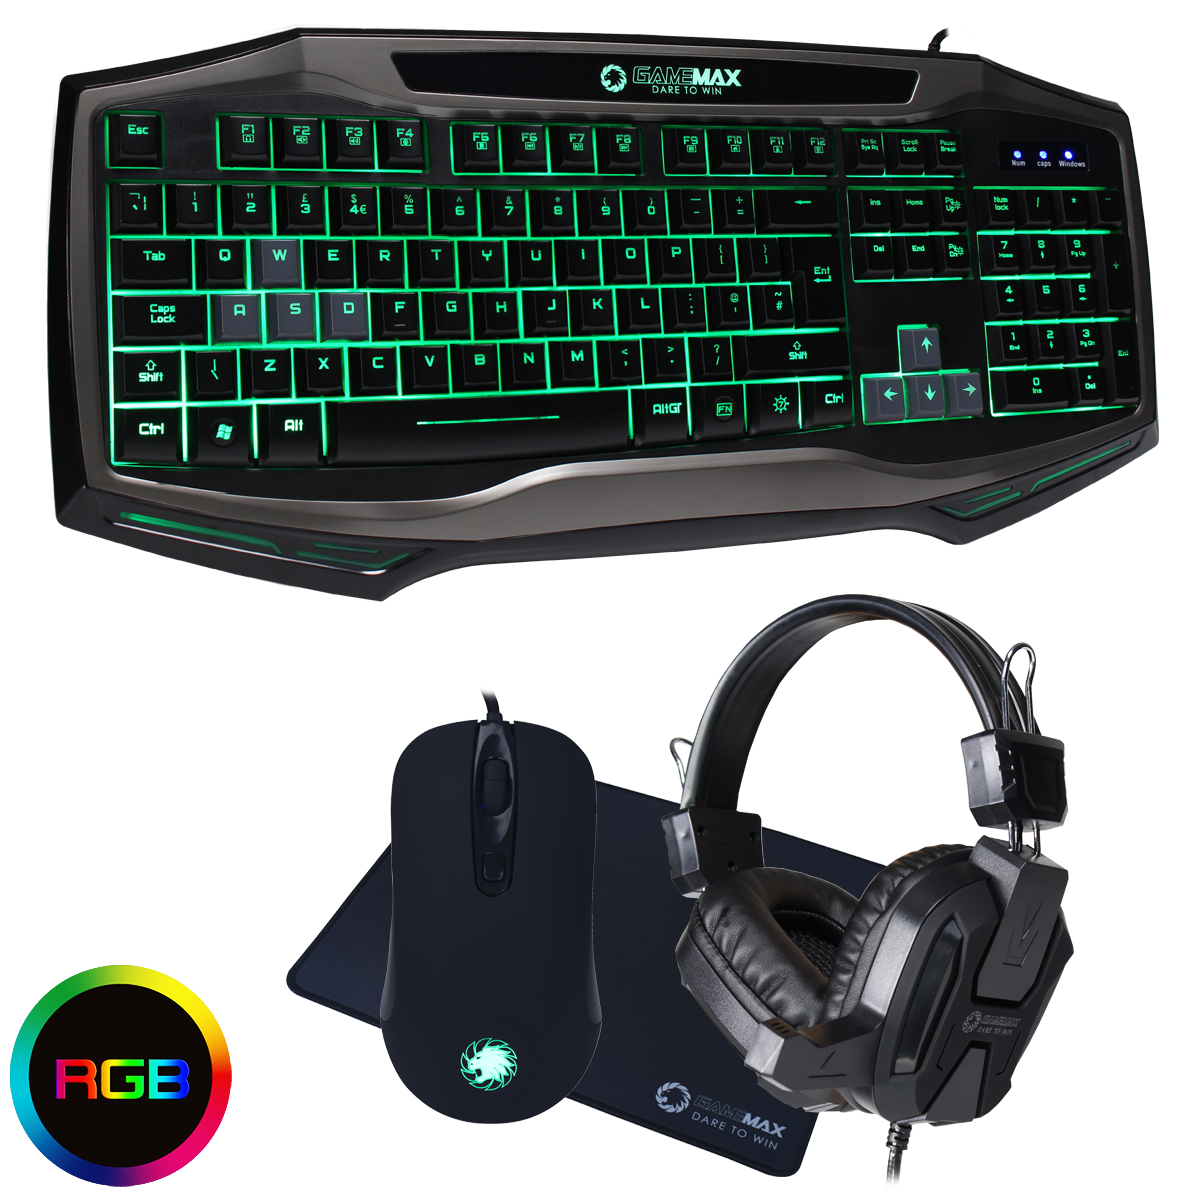 bcaffbf7ddb Details about Game Max Raptor RGB PC Gaming Keyboard & Mouse, Black Headset  & Mouse Mat